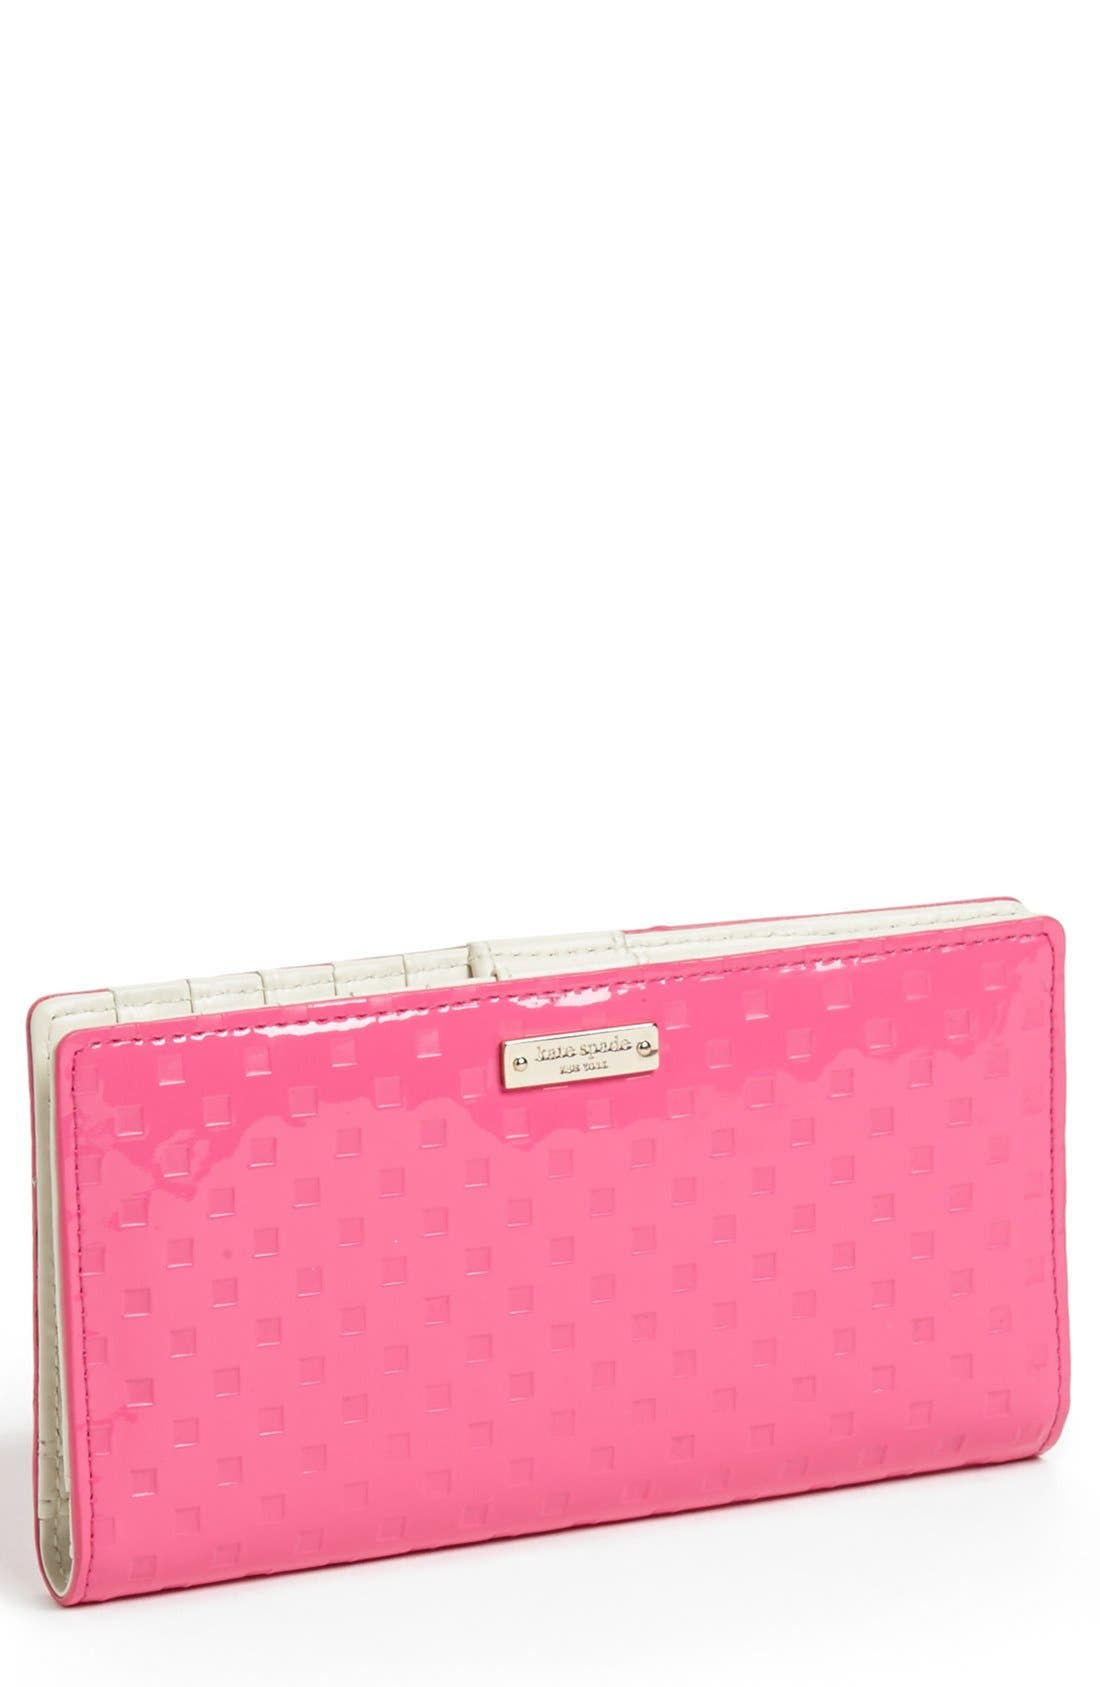 Alternate Image 1 Selected - kate spade new york 'jewel street - stacy' wallet